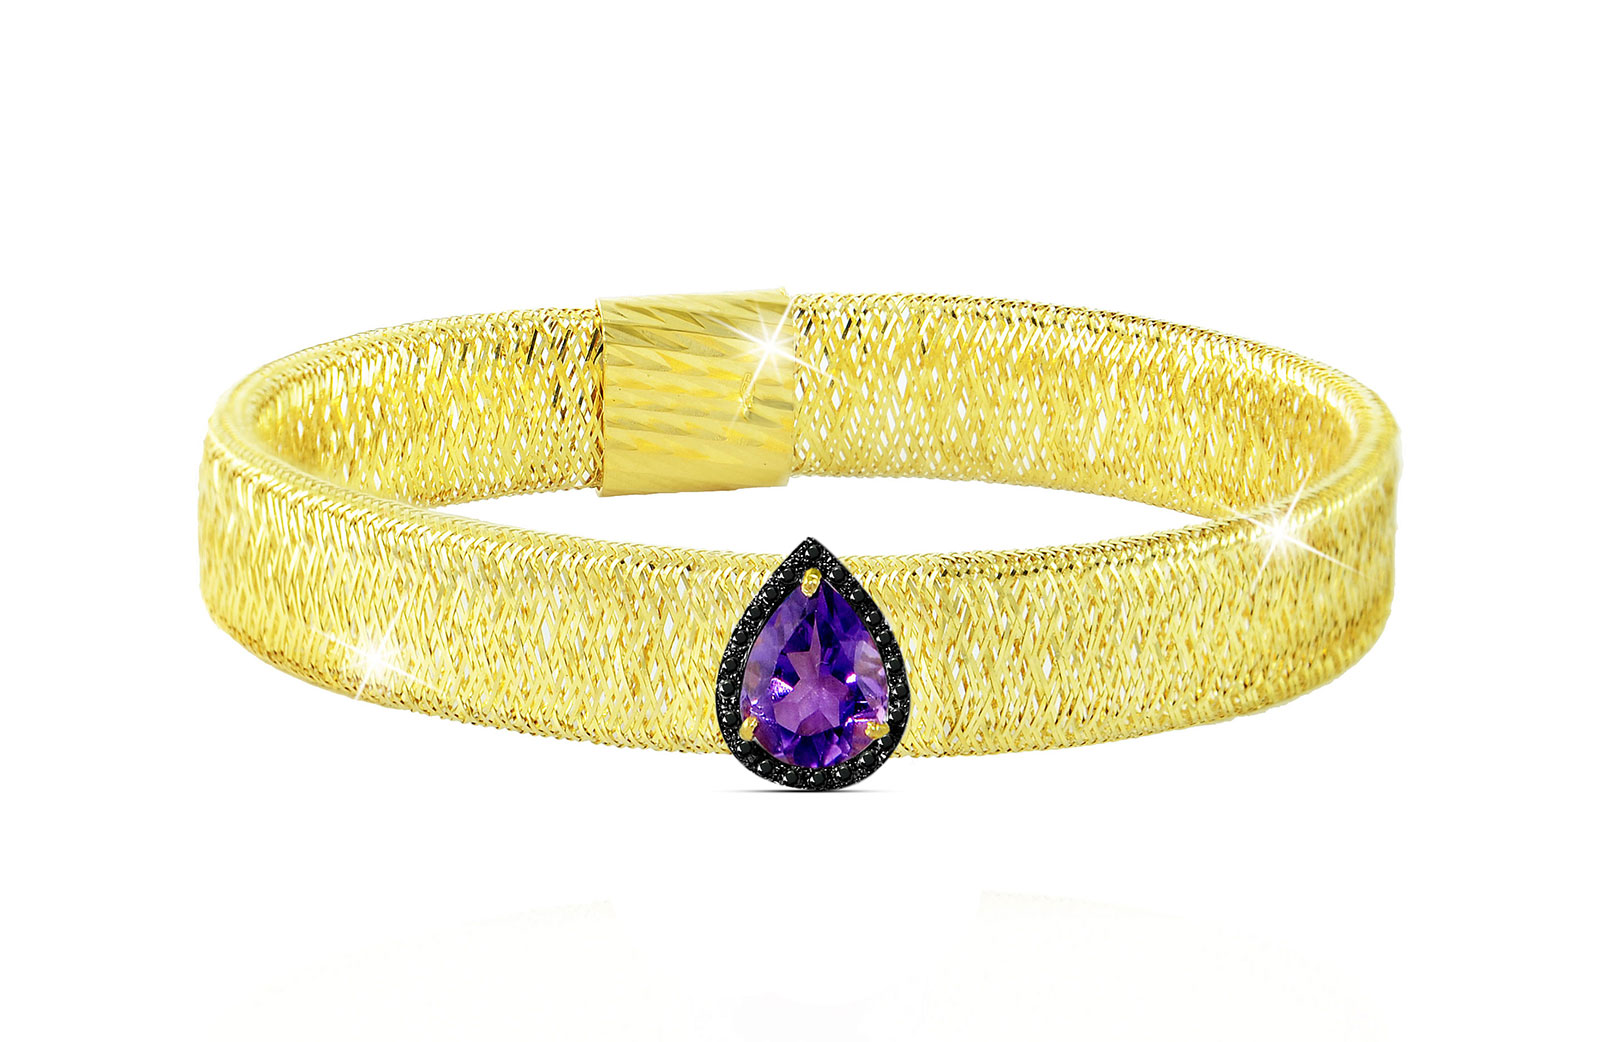 Vera Perla 18K Gold 0.12ct Black Diamonds, Amethyst Mesh Bracelet